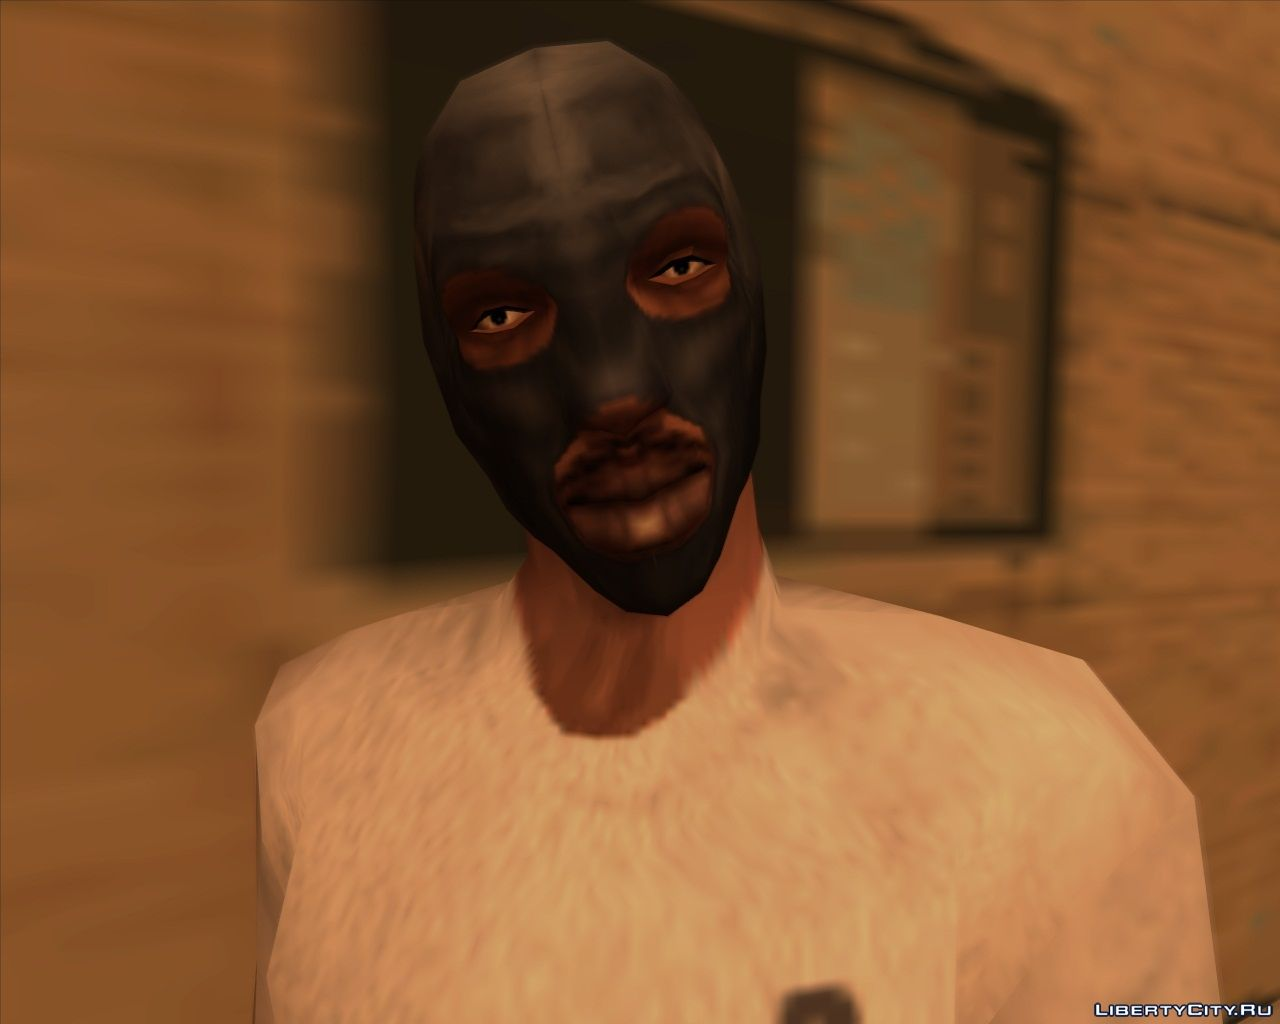 The Face Of Cj As In The Early Beta Alpha Version For